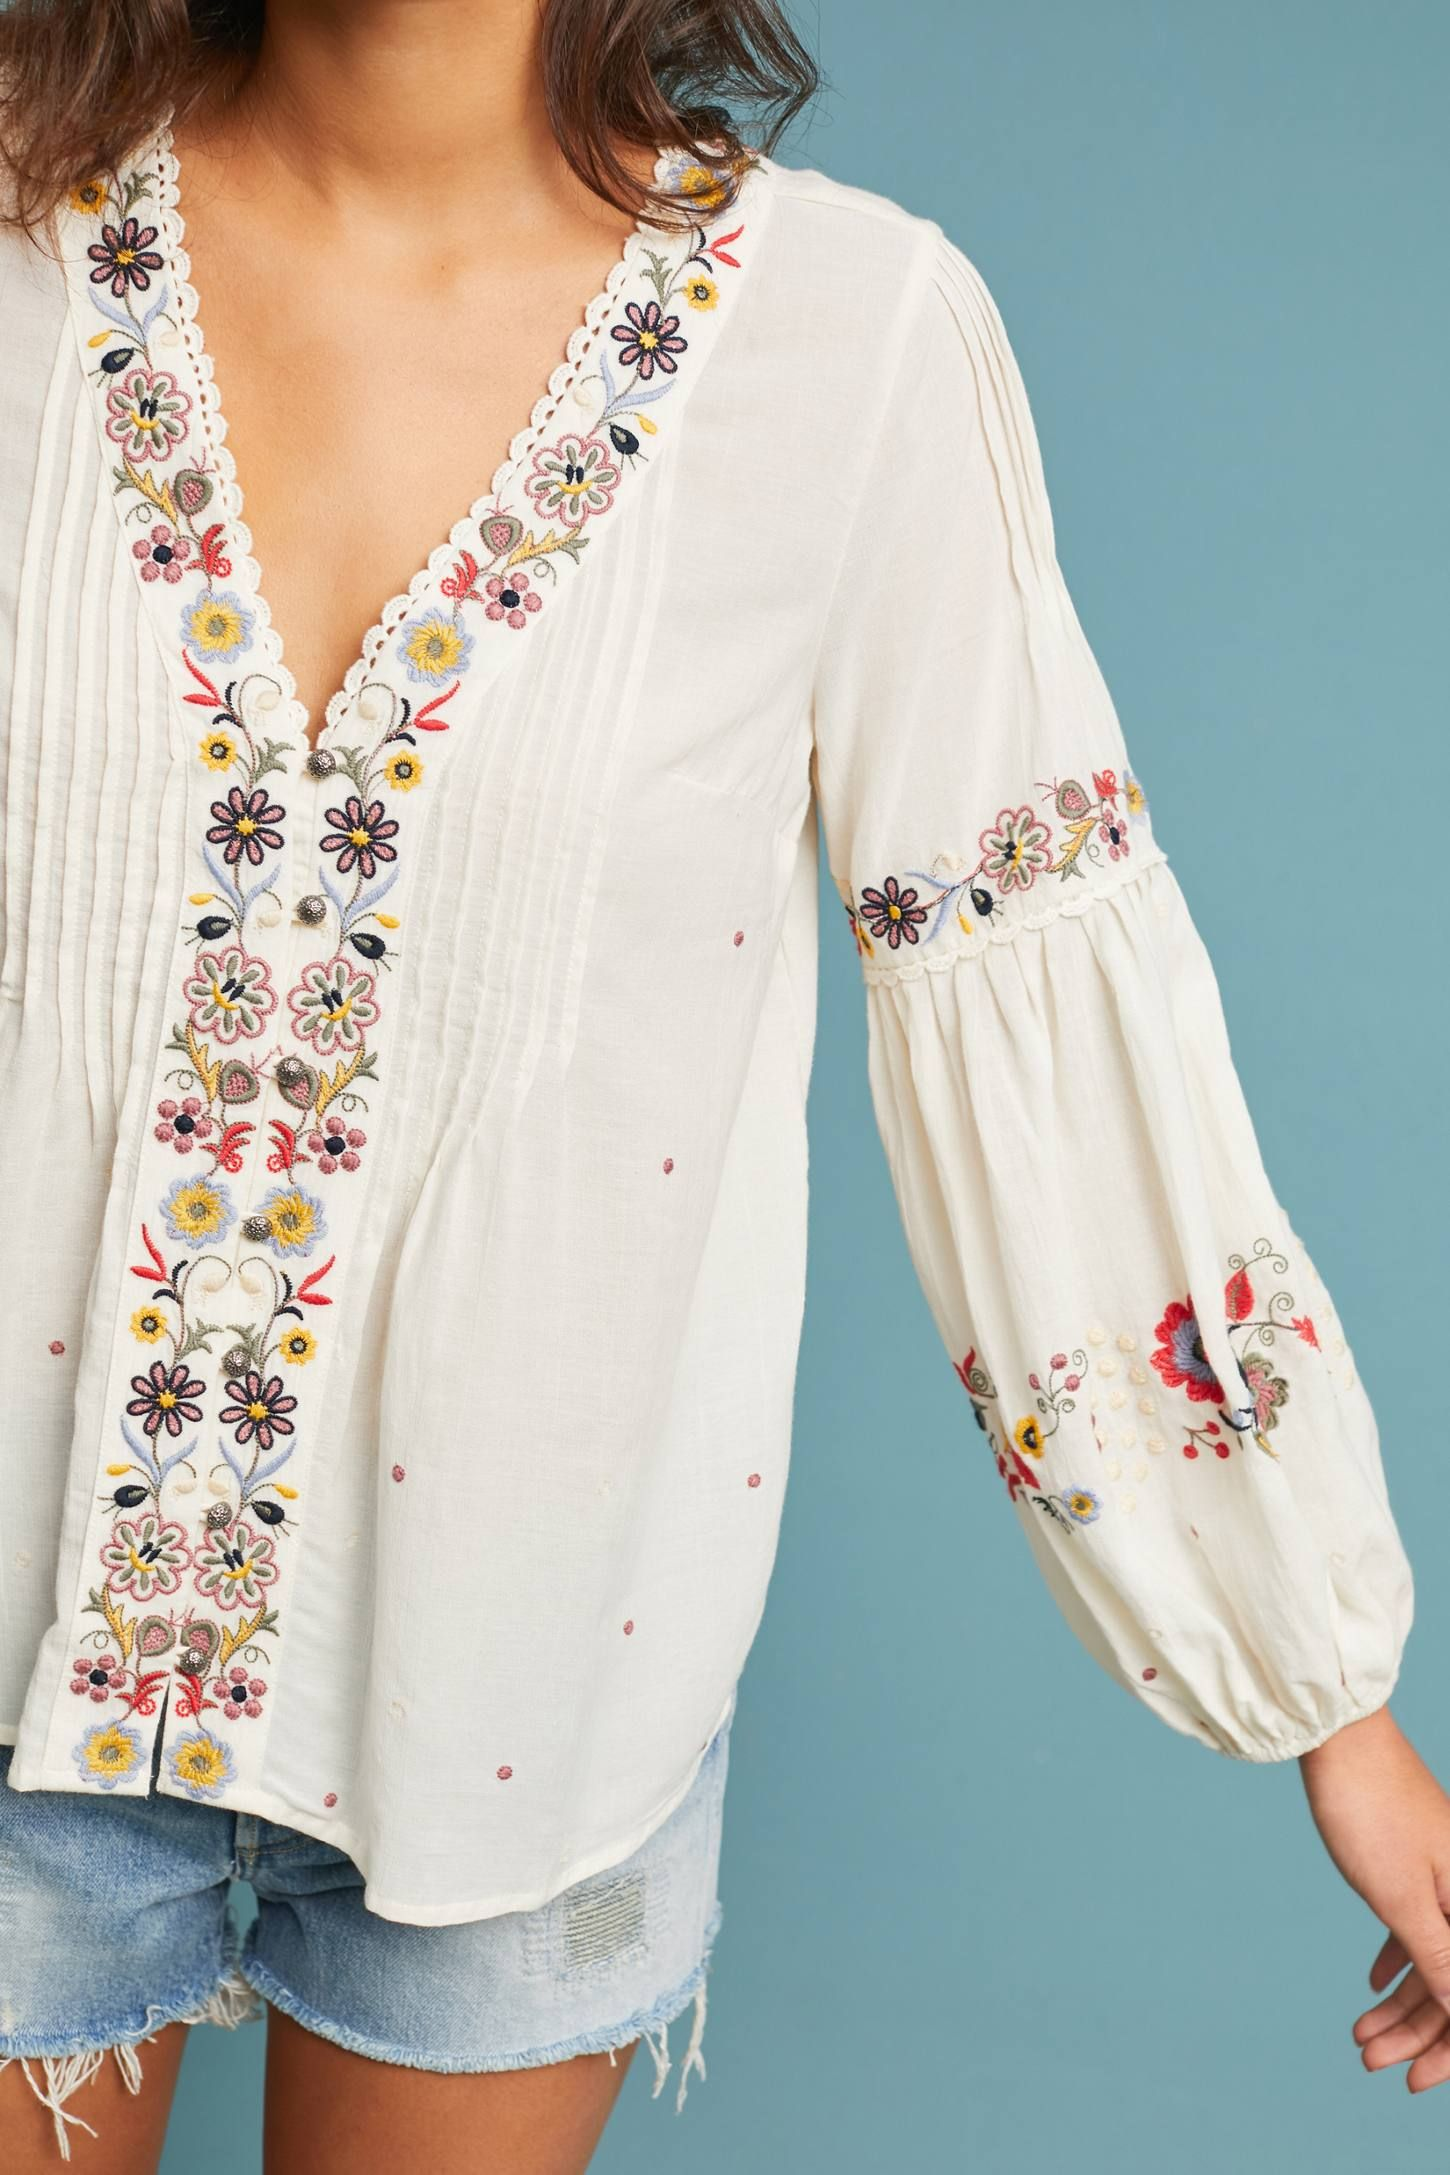 7370d10a262db Carthage Embroidered Peasant Top in 2019